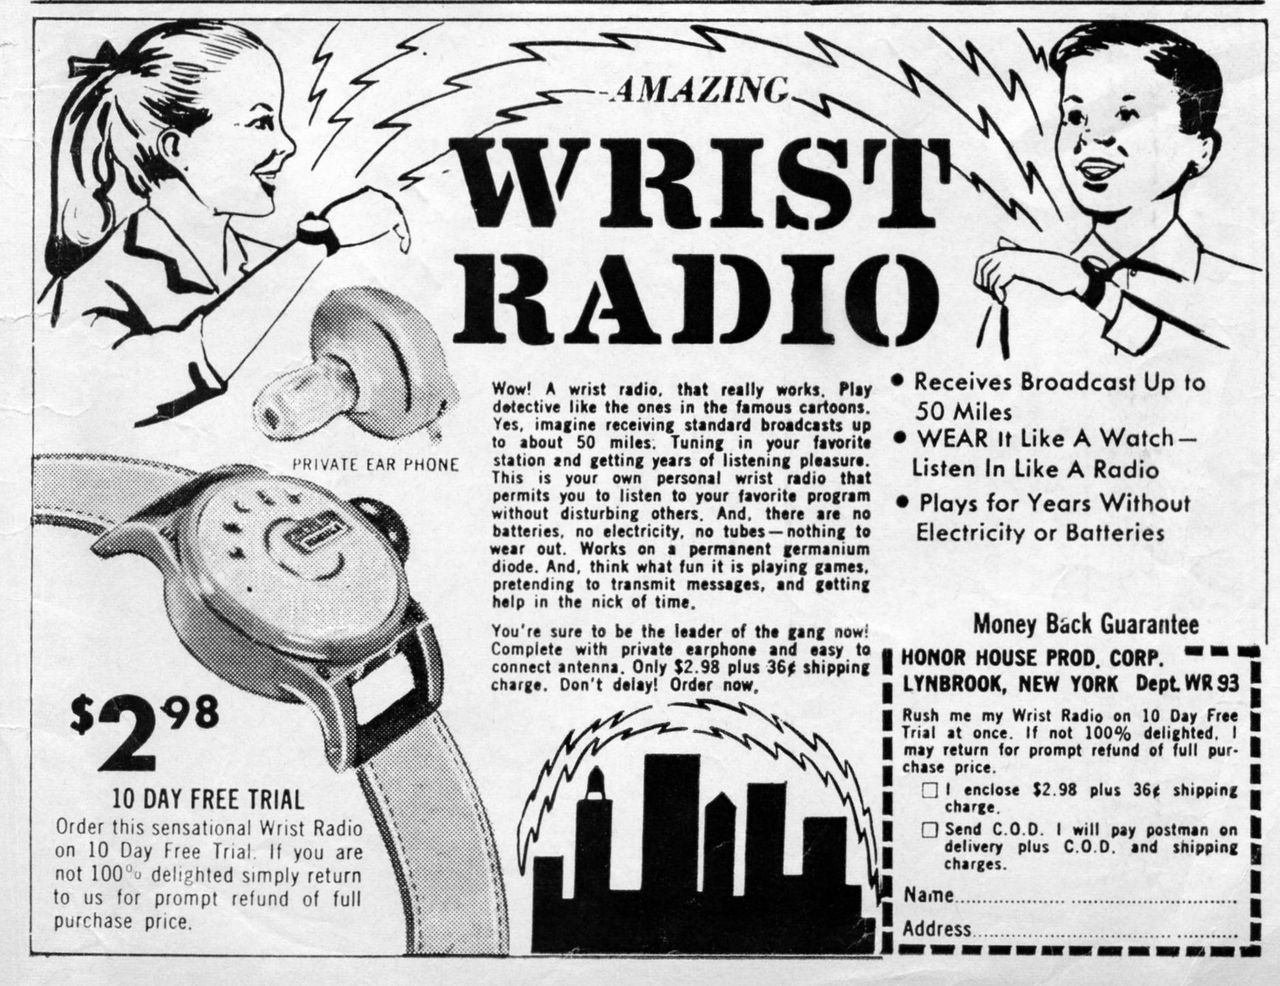 - Amazing Wrist Radio - Comic Book Ad, circa 1961.